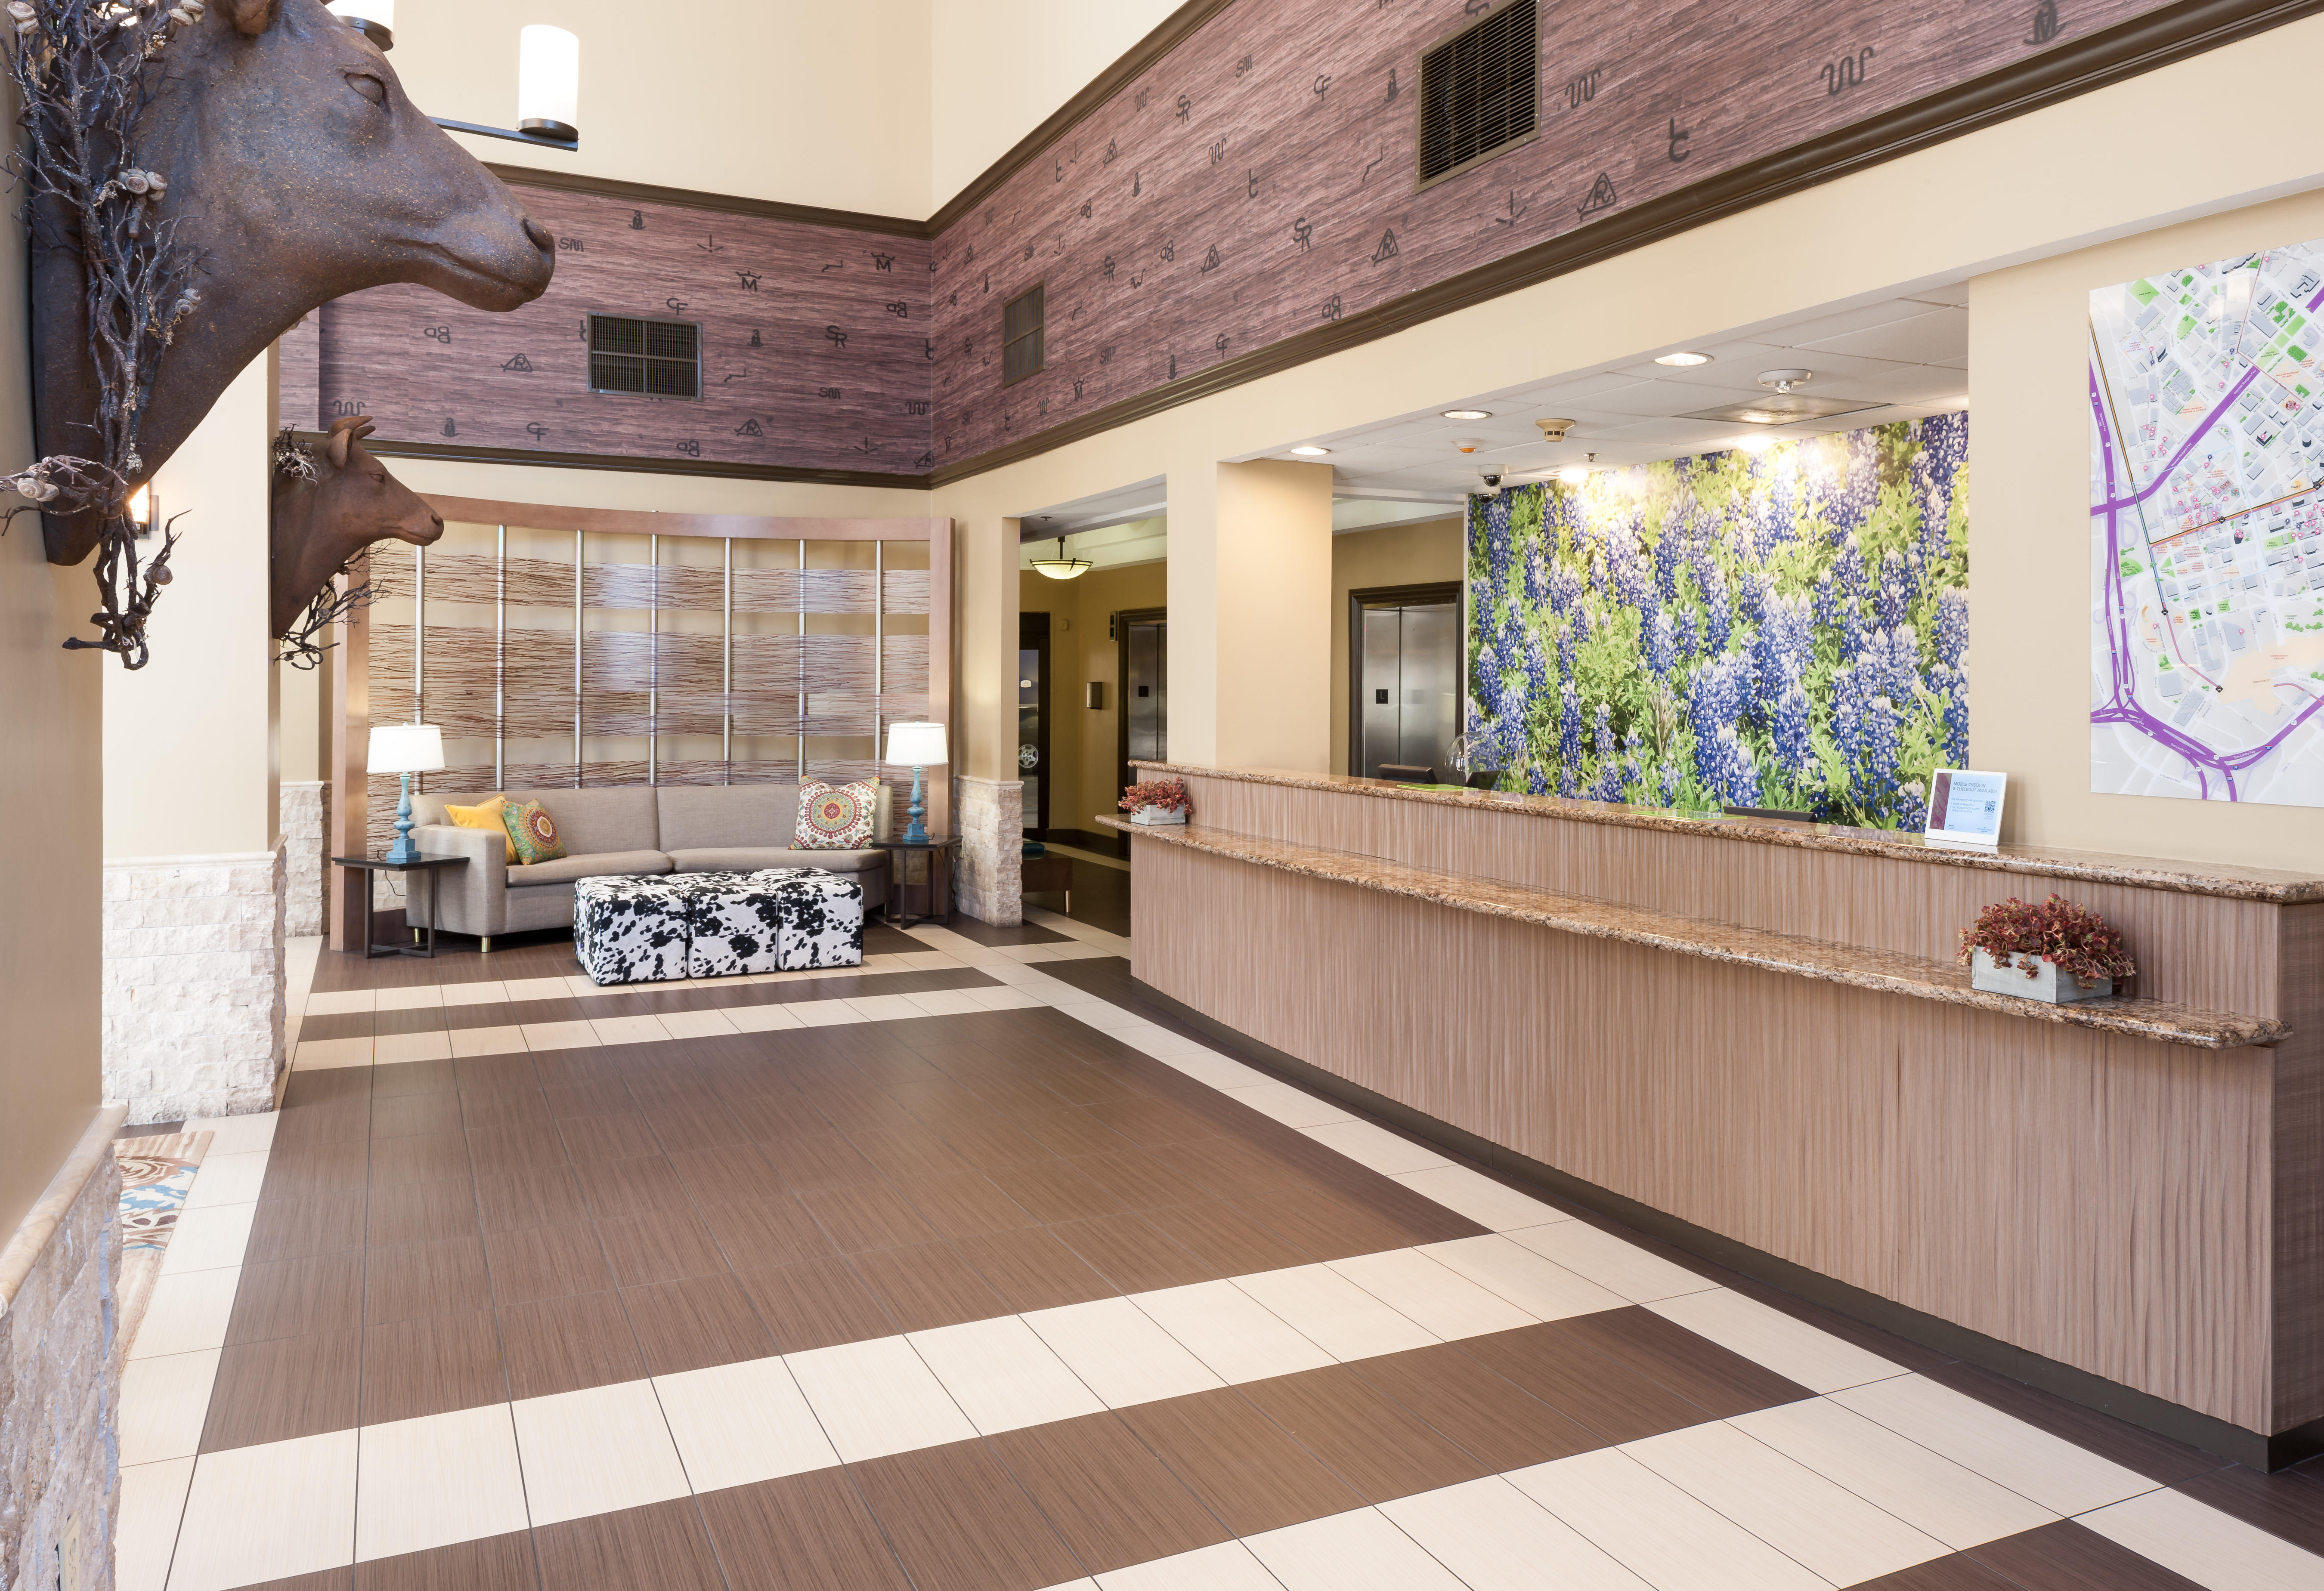 SpringHill Suites by Marriott Dallas Downtown/West End image 2